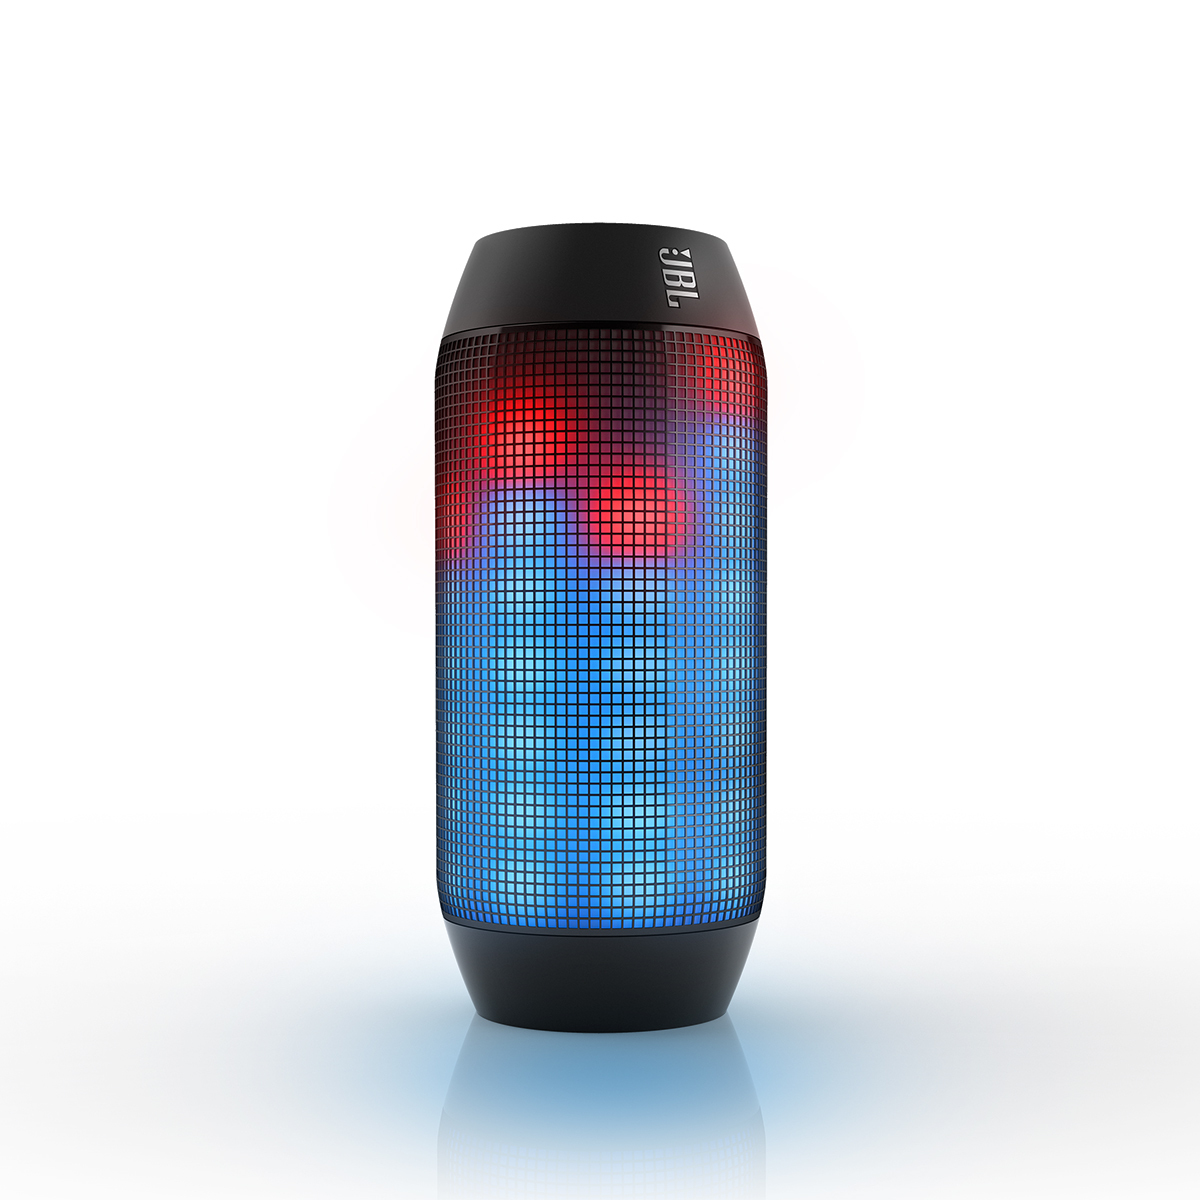 JBL Portable Audio Products Debut in Verizon Wireless Stores ...